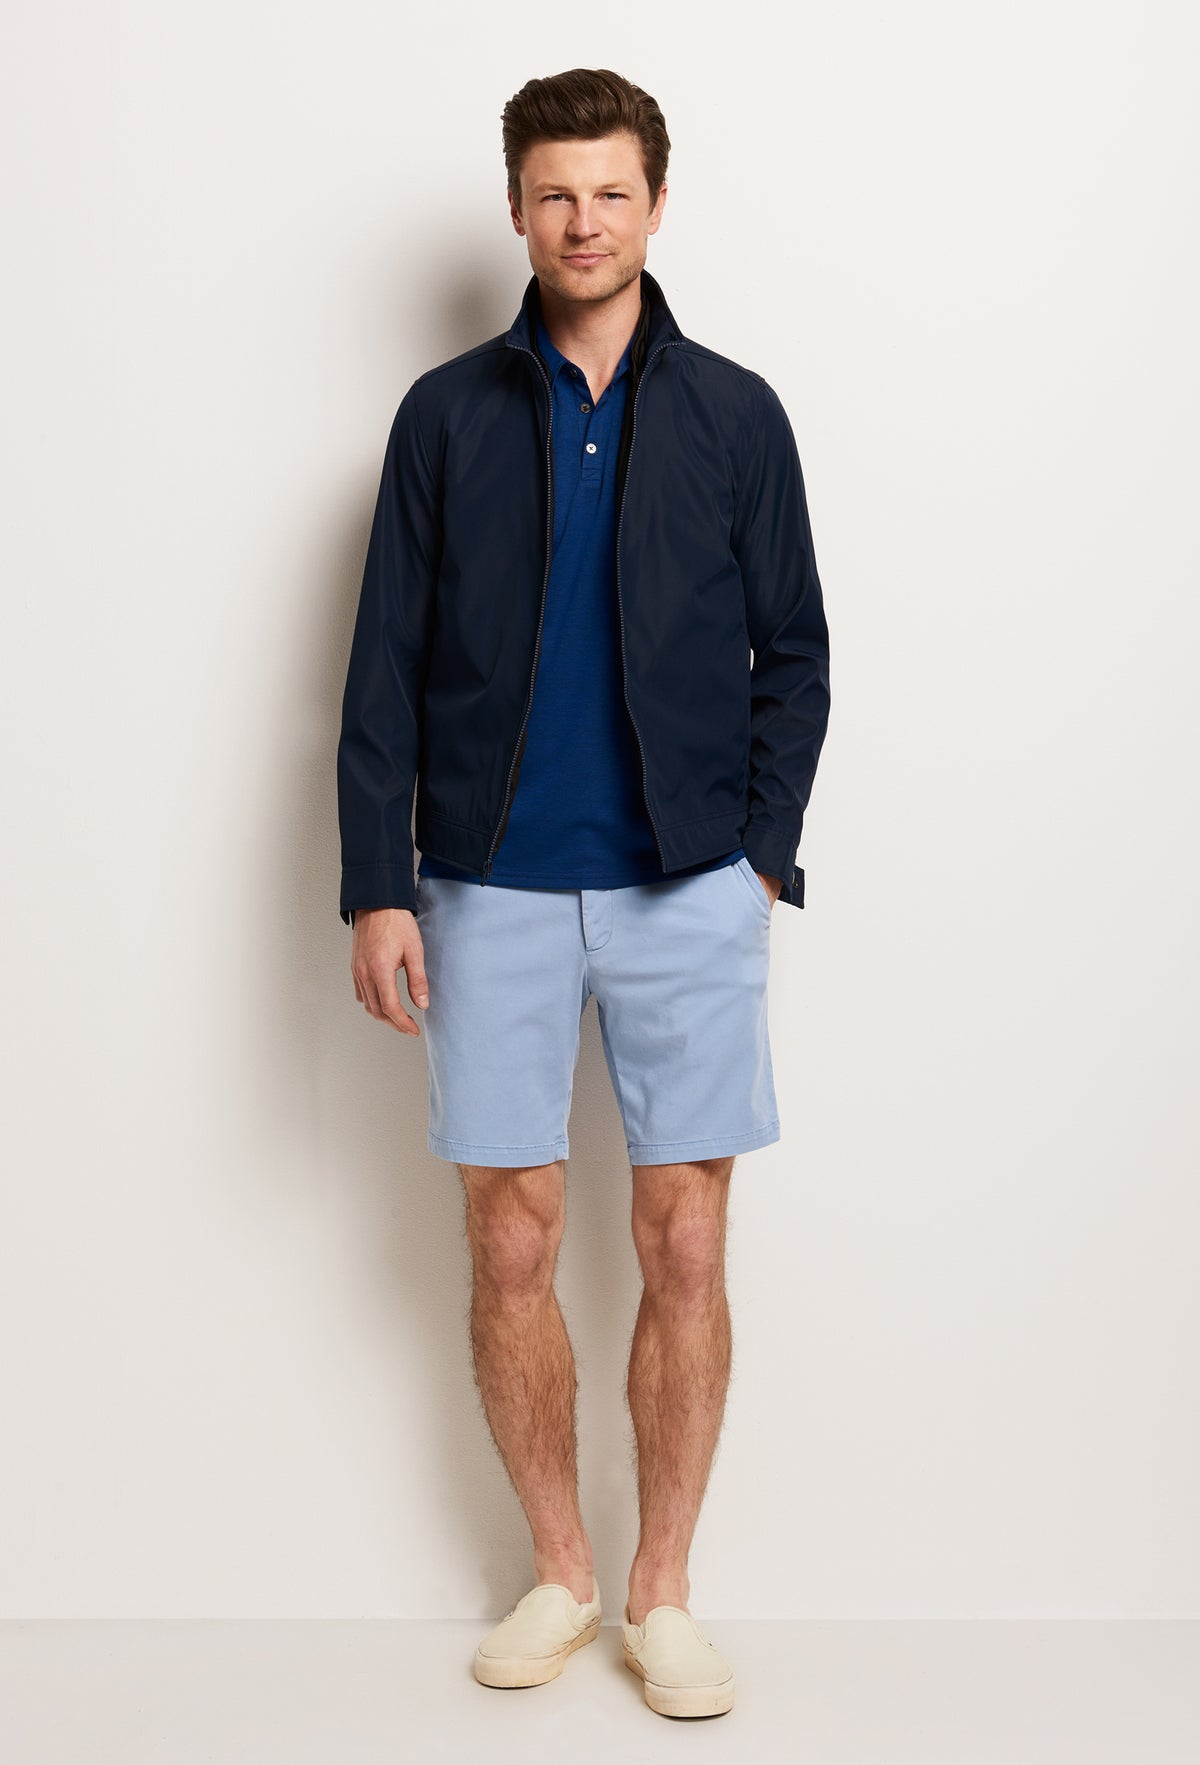 ZACHARY-PRELL-Caldwell-PolosModern-Menswear-New-Dress-Code